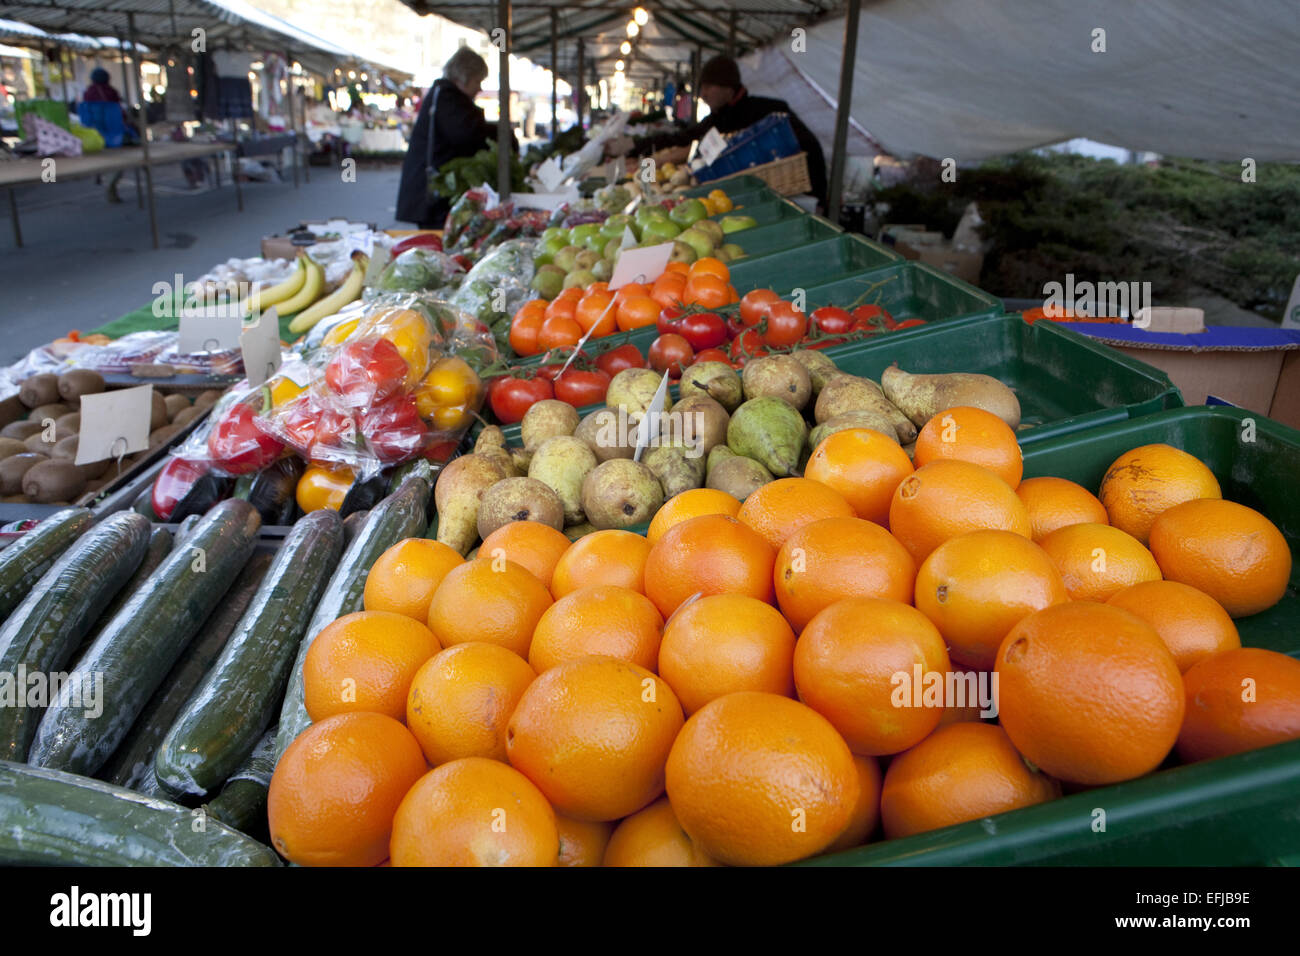 Fruit and vegetable market stall with oranges - Stock Image